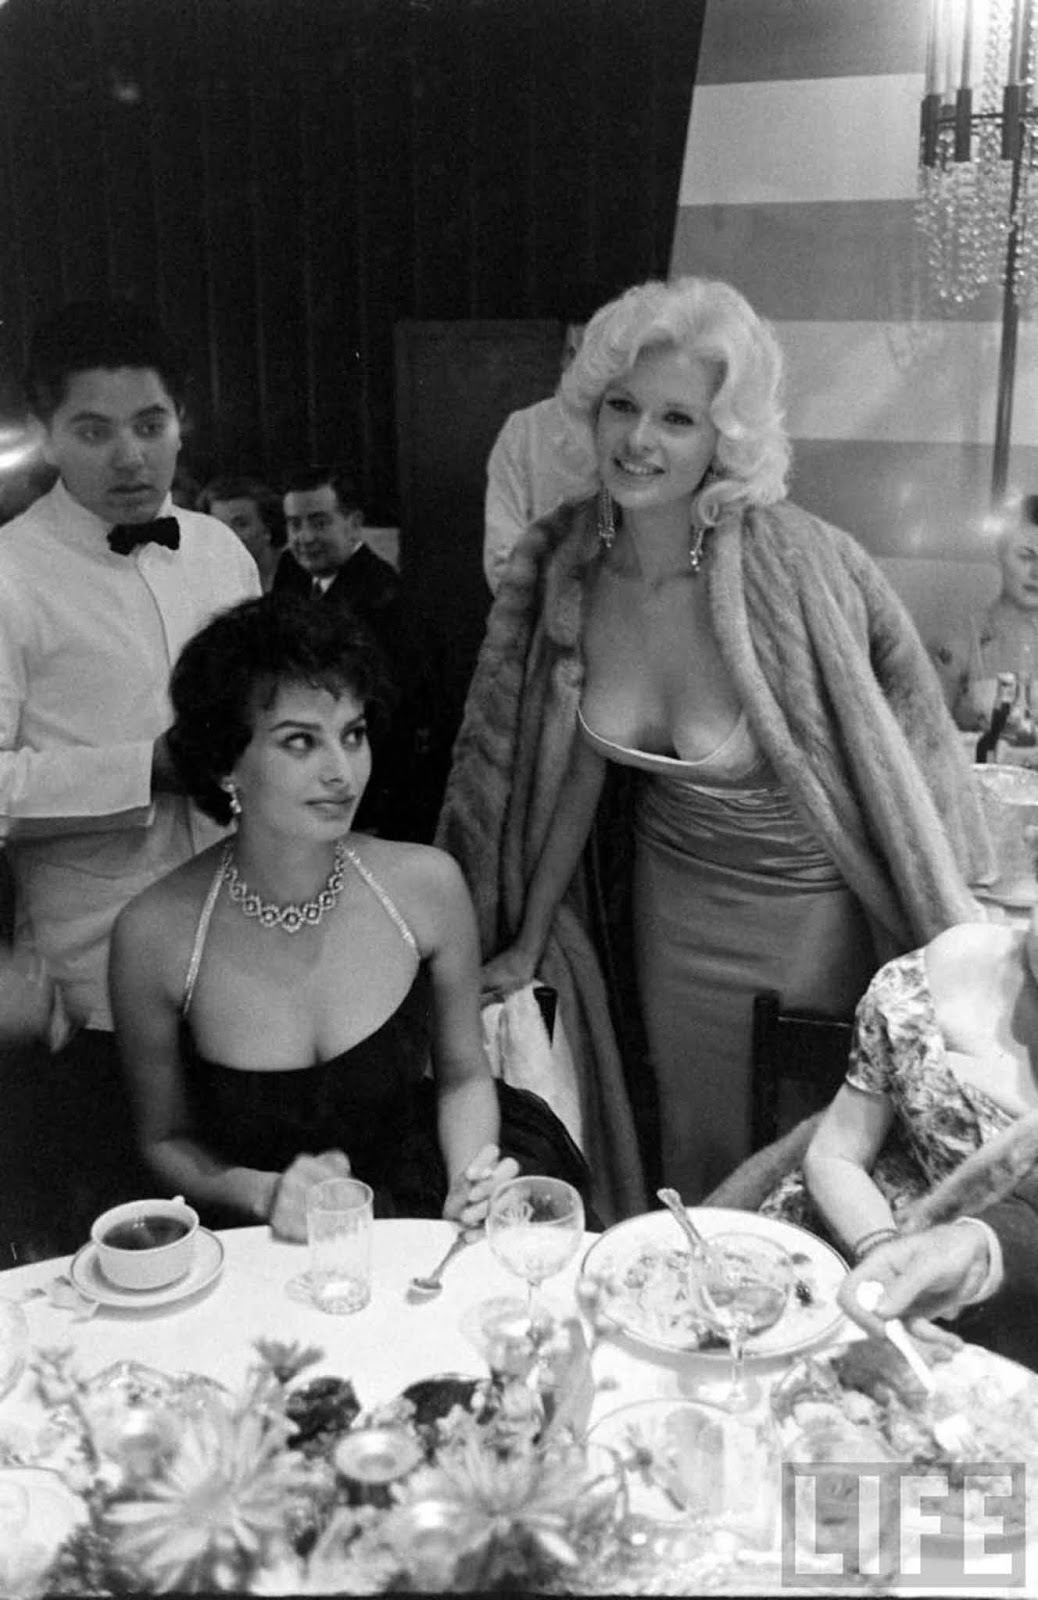 The story behind the infamous Sophia Loren and Jayne Mansfield photo, 1957